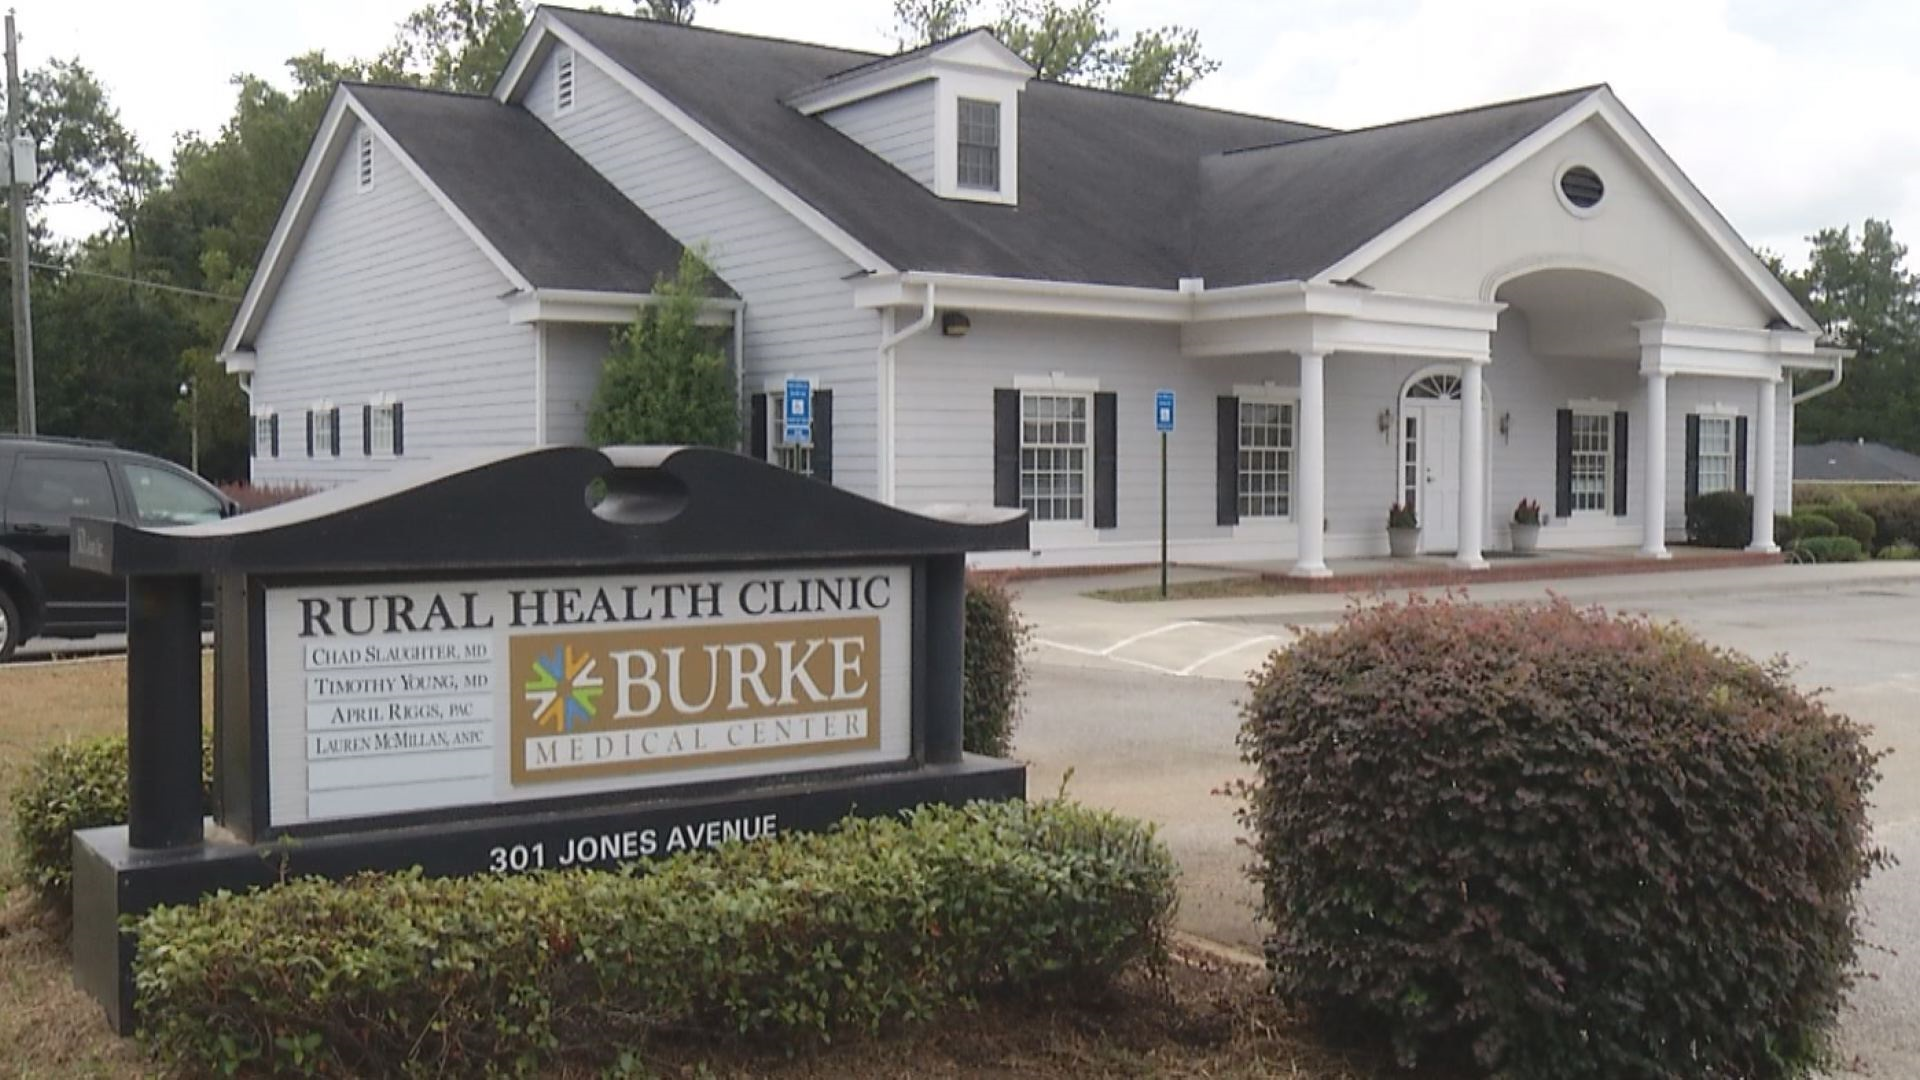 Burke County Medical Center Rural Clinic